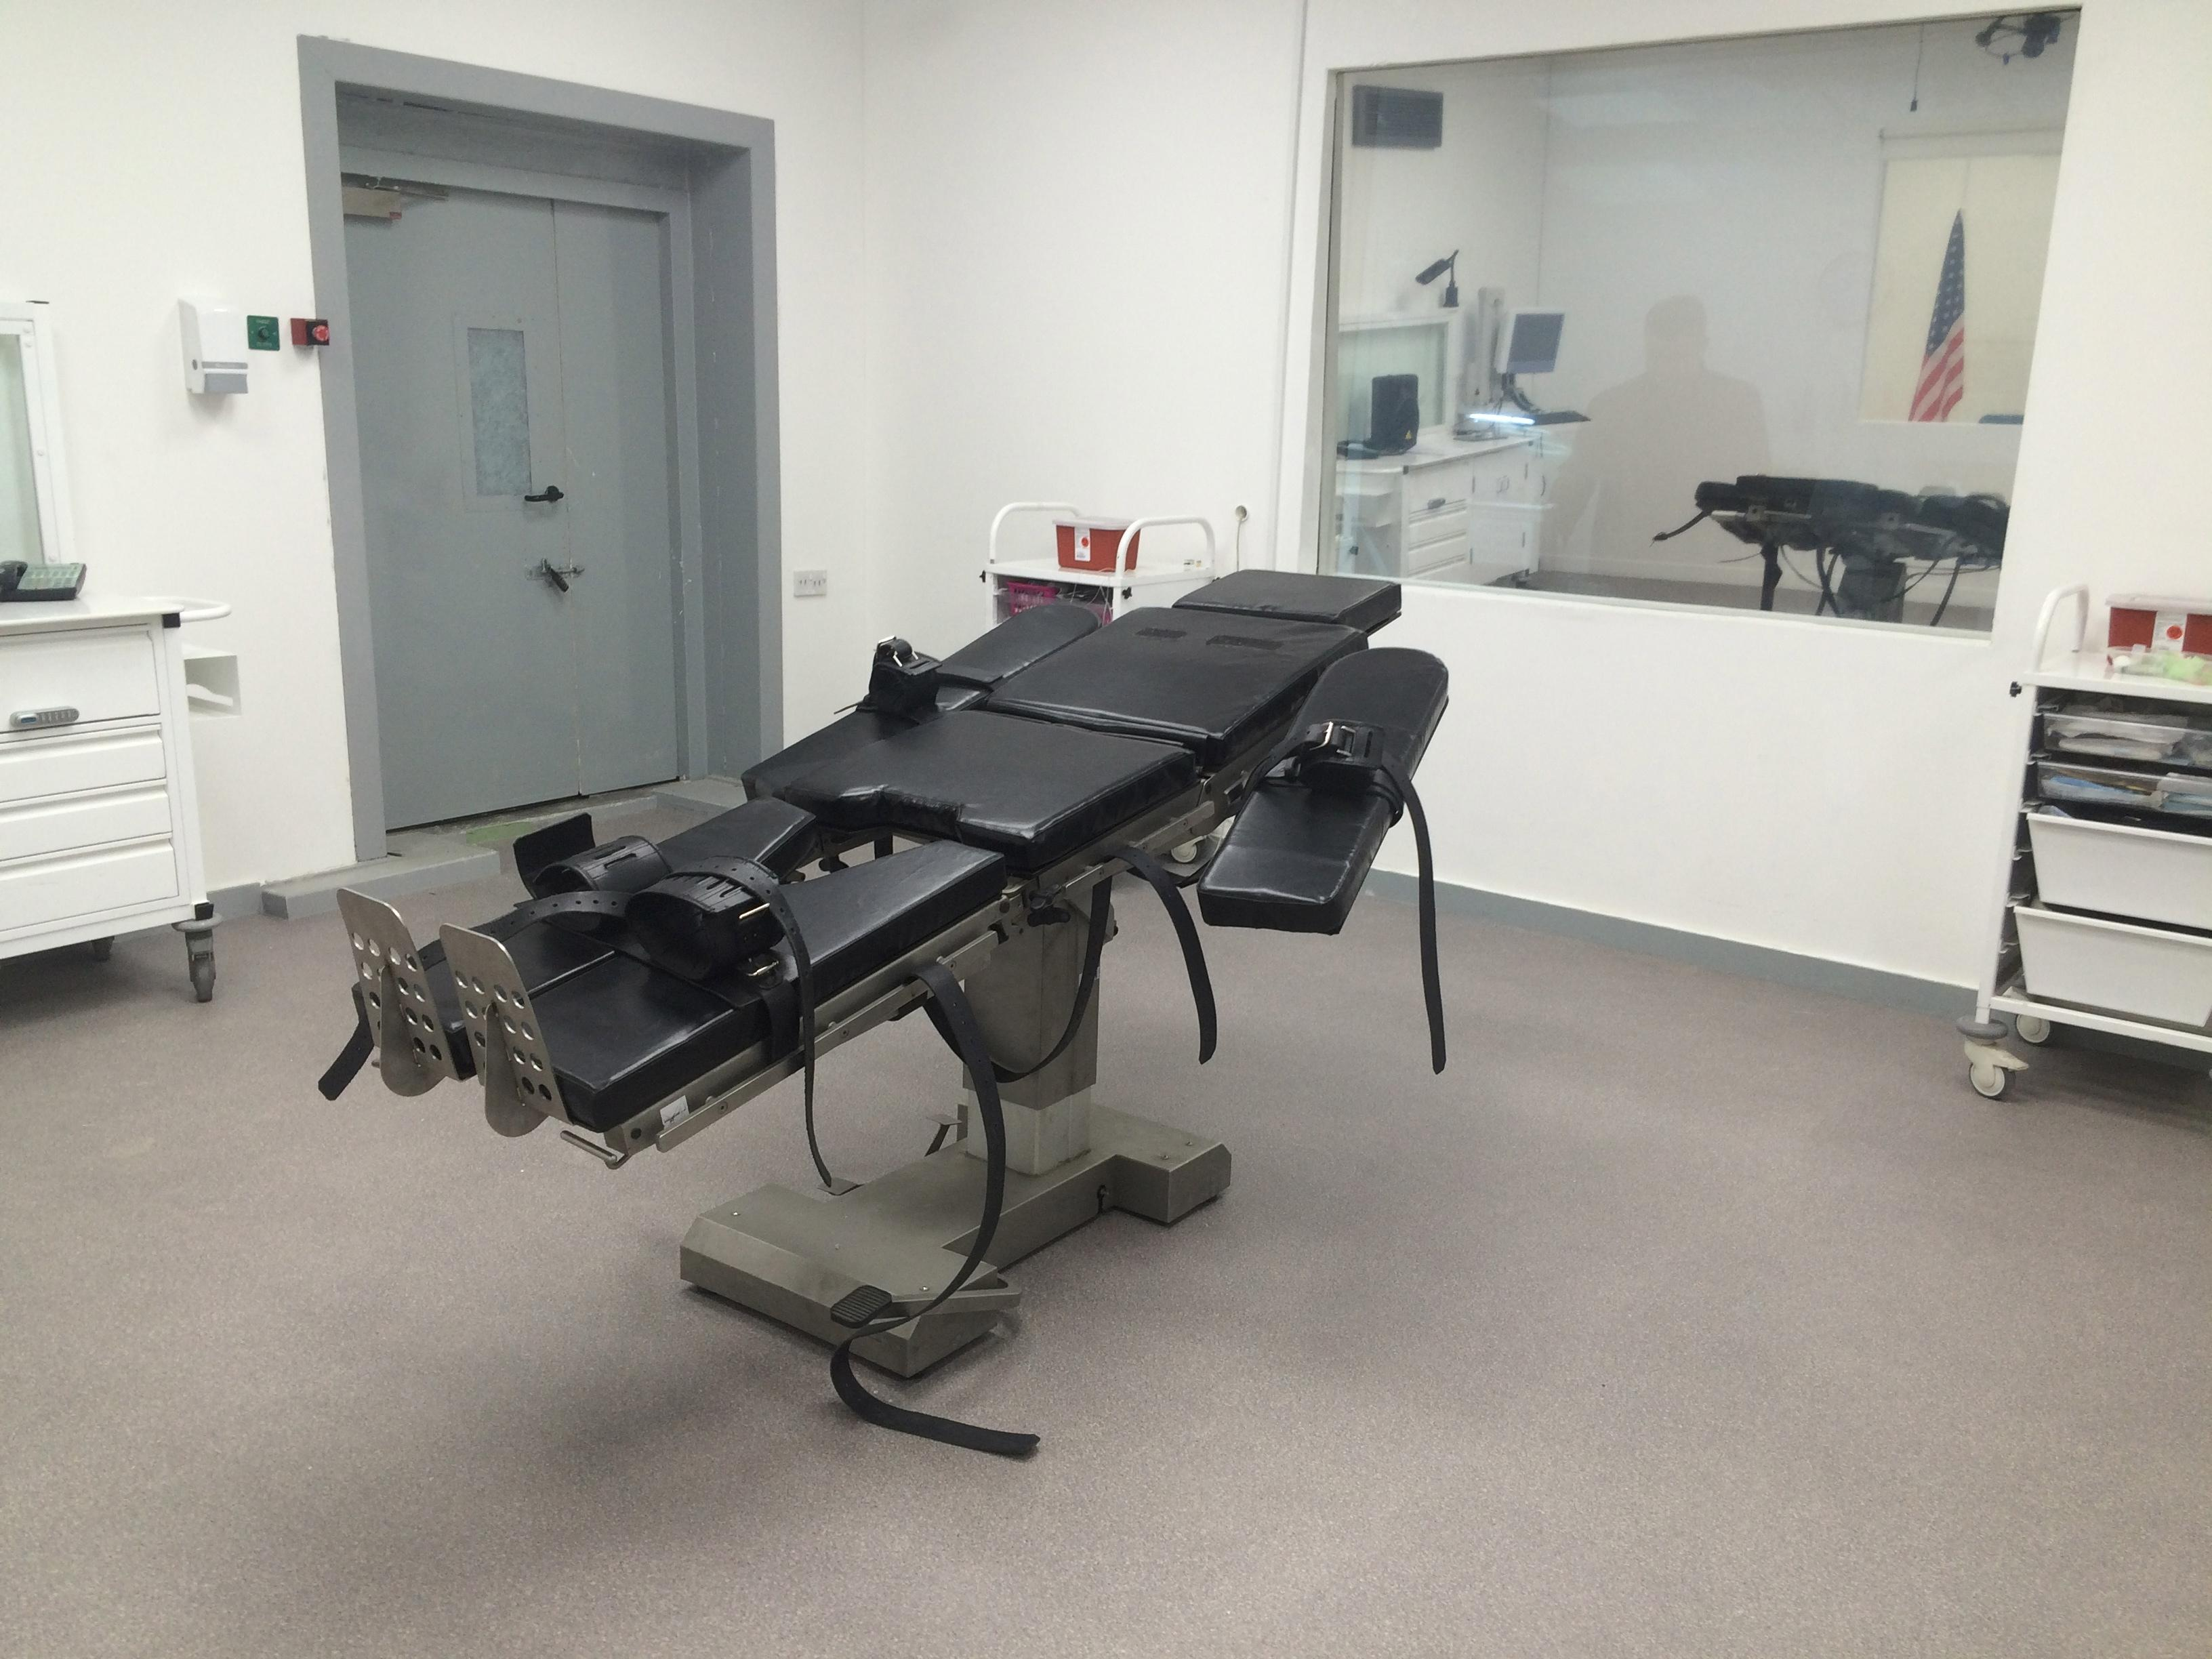 Execution Room 1